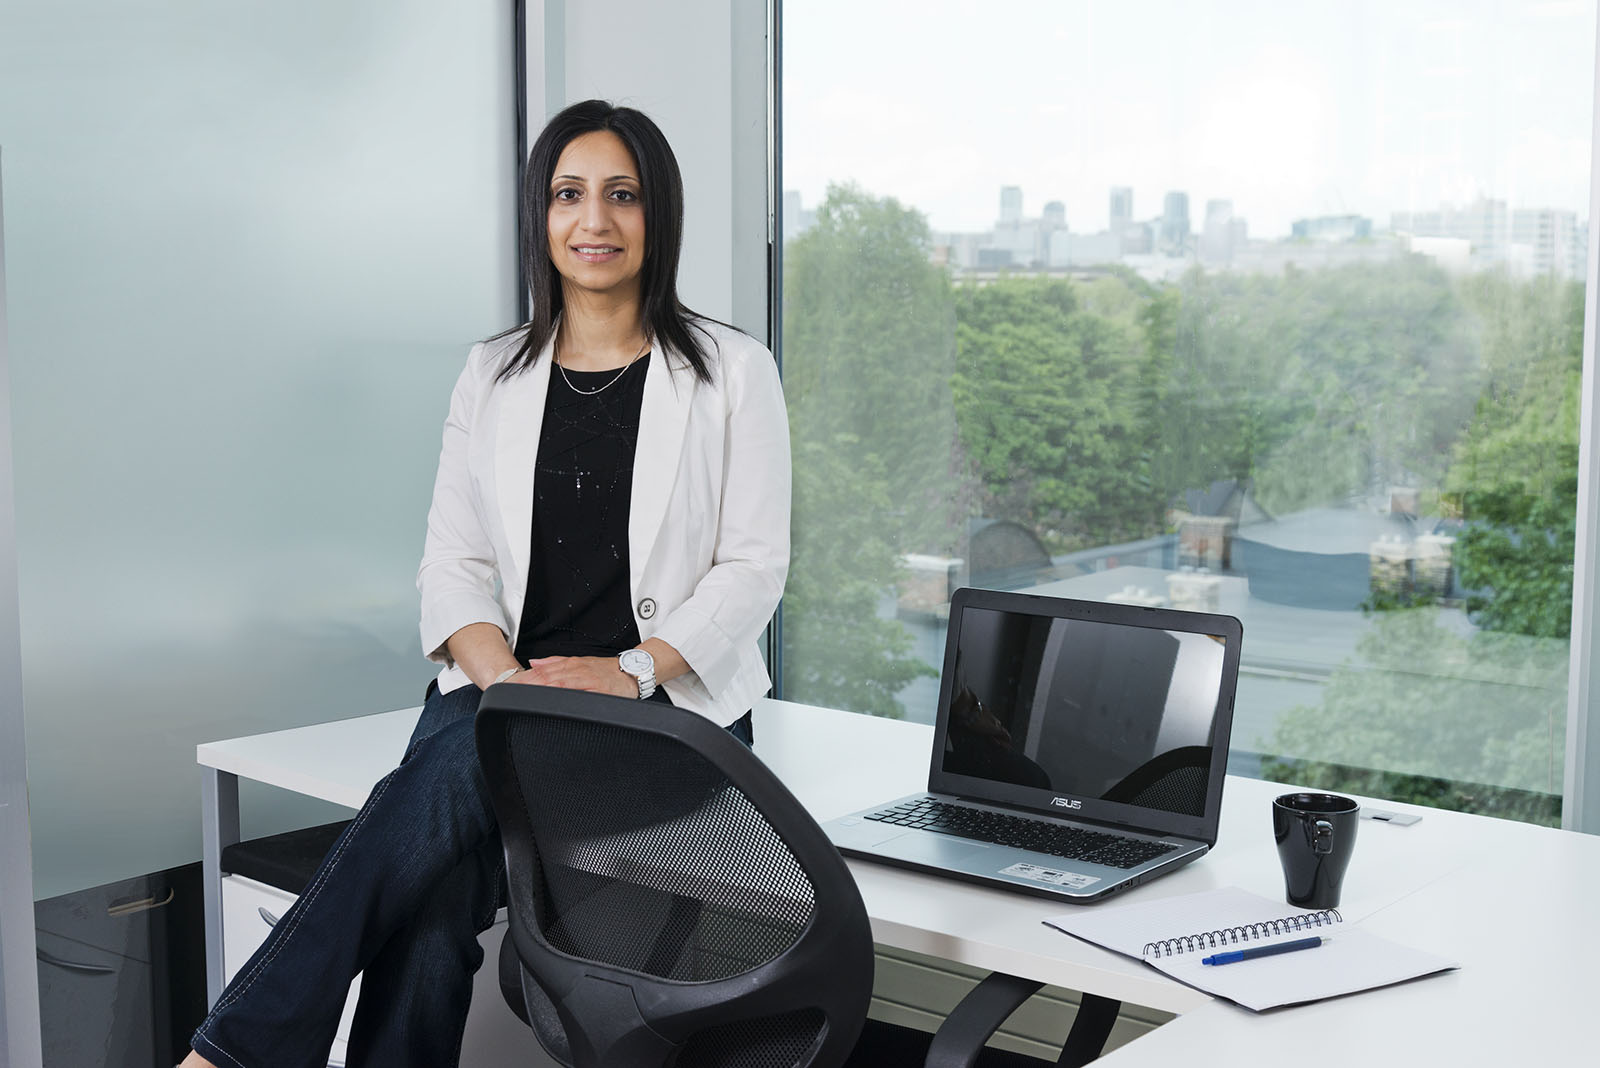 Female executive seated on office desk beside laptop